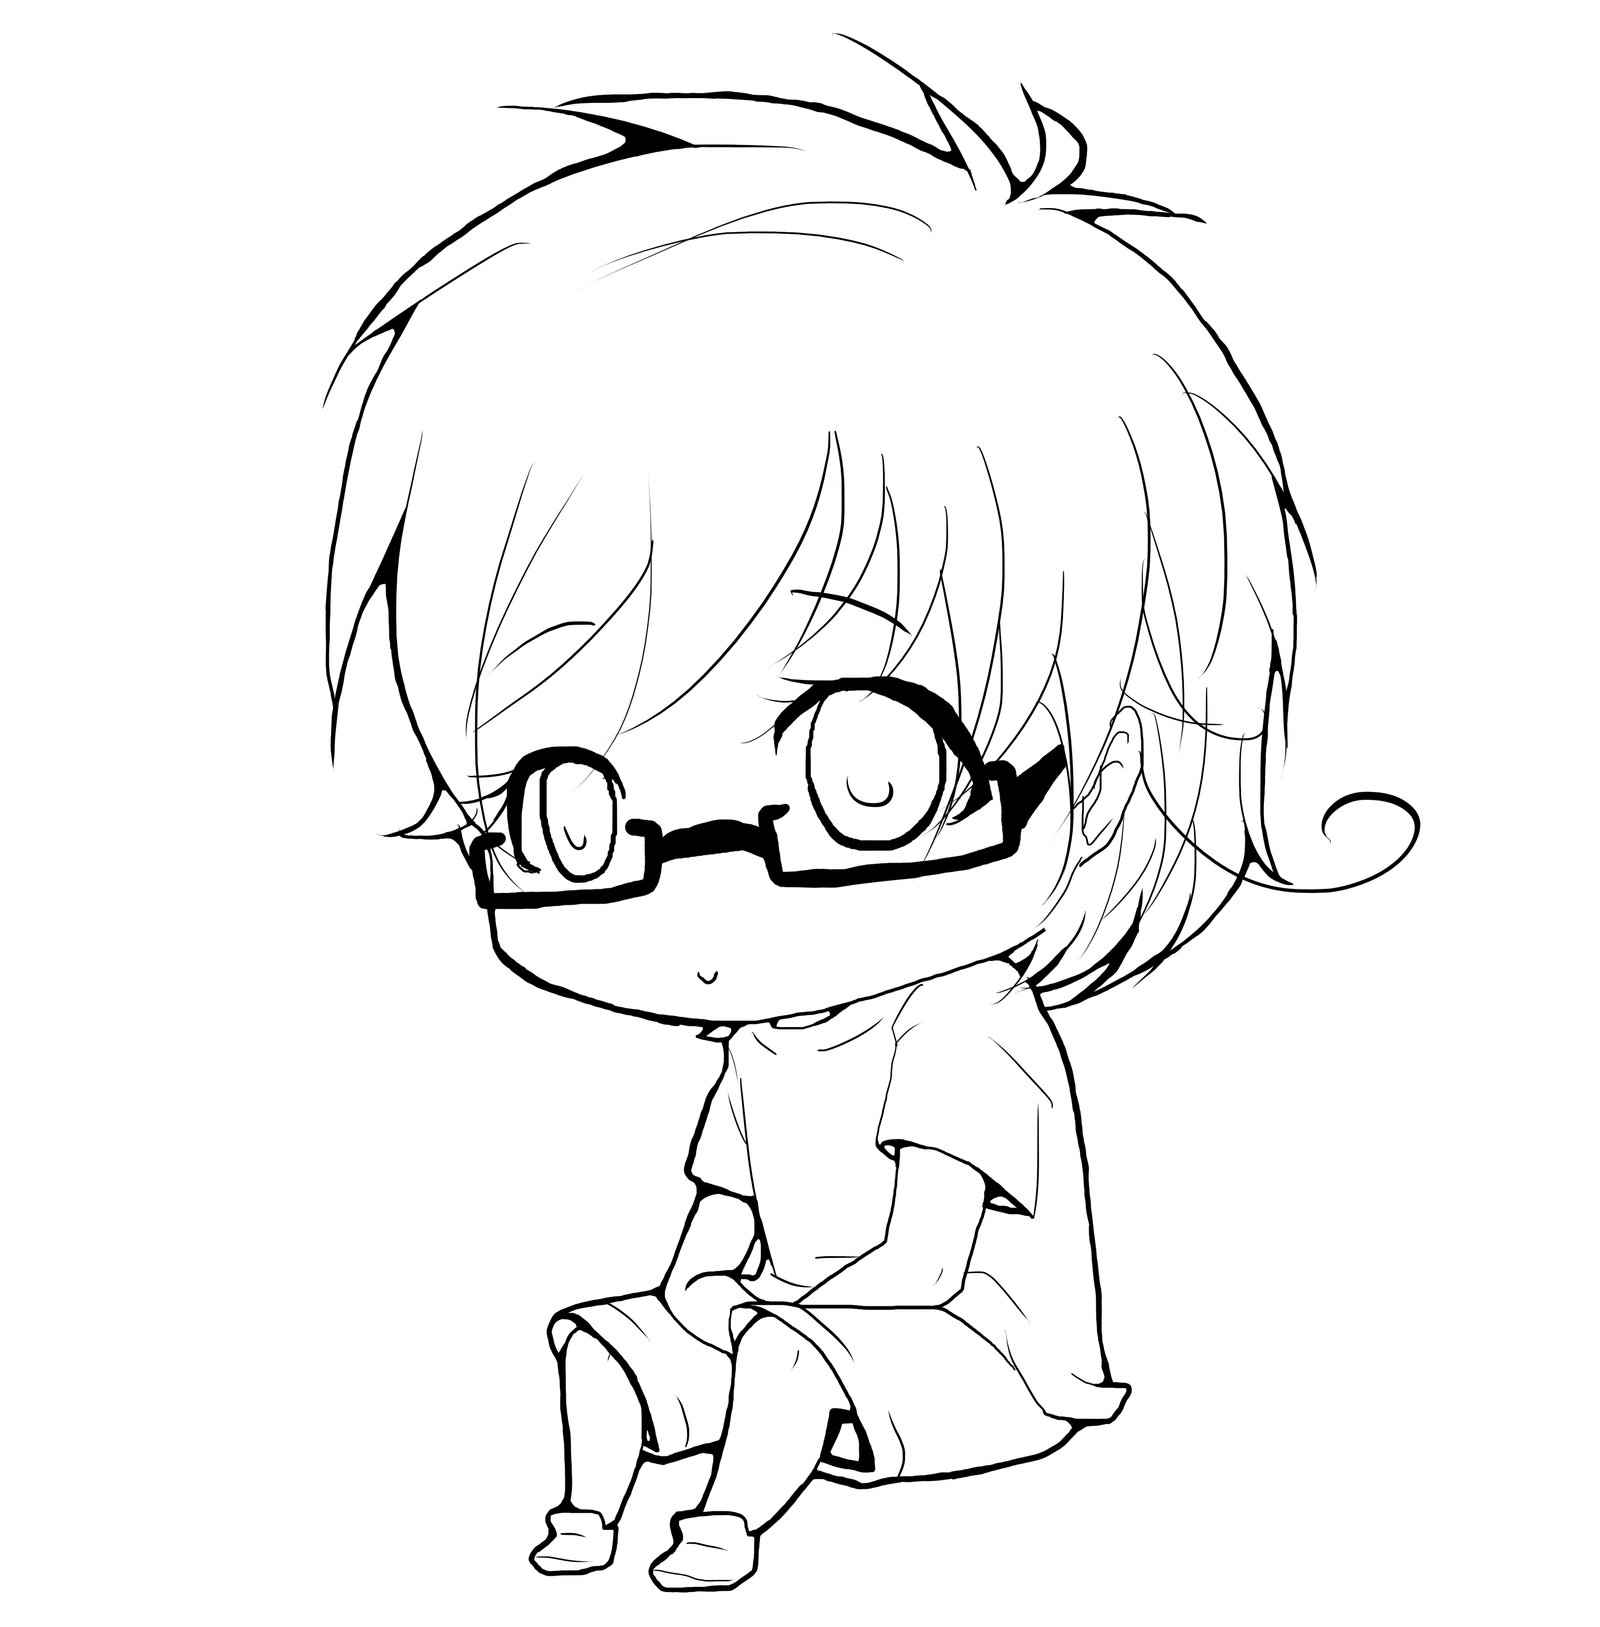 Chibi Lineart : What i do during pe chibi lineart contest round by mizuki